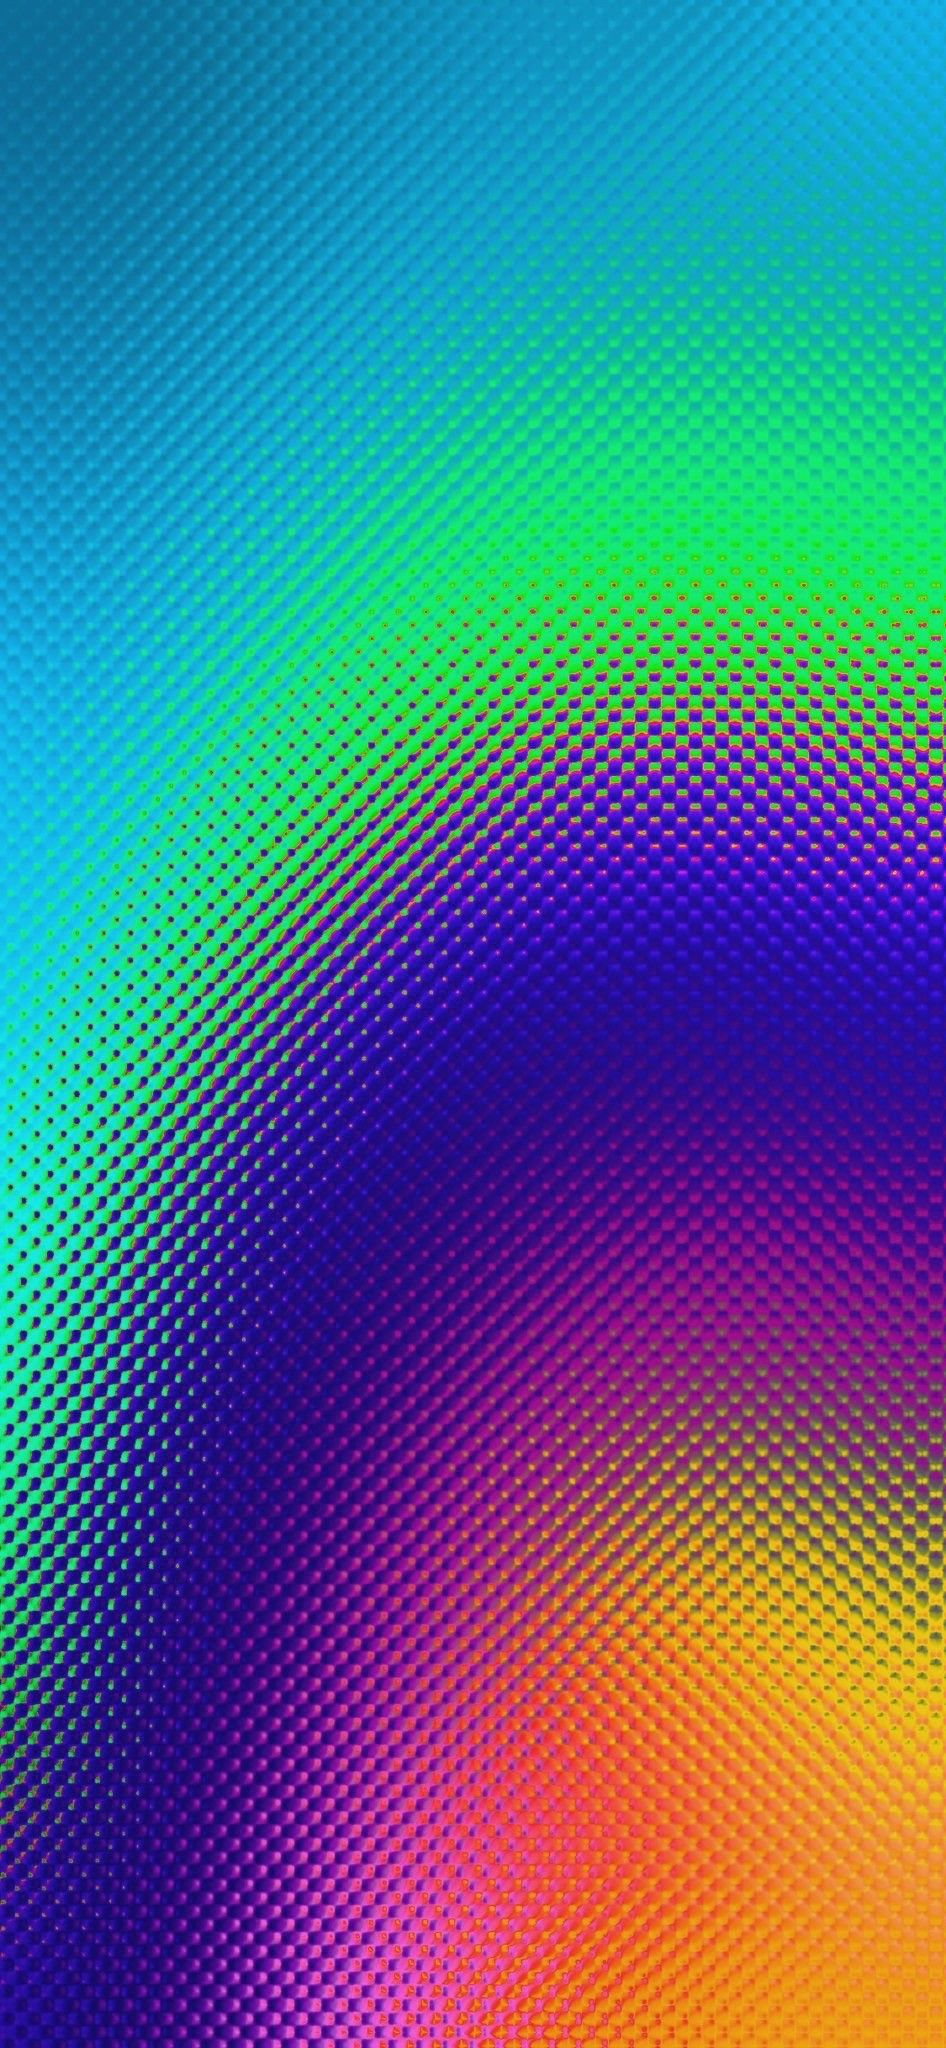 Ios 11 Iphone X Purple Blue Green Iridescent Clean Simple Abstract Apple Wallpaper Iphone 8 Apple Wallpaper Iphone Apple Wallpaper Samsung Wallpaper